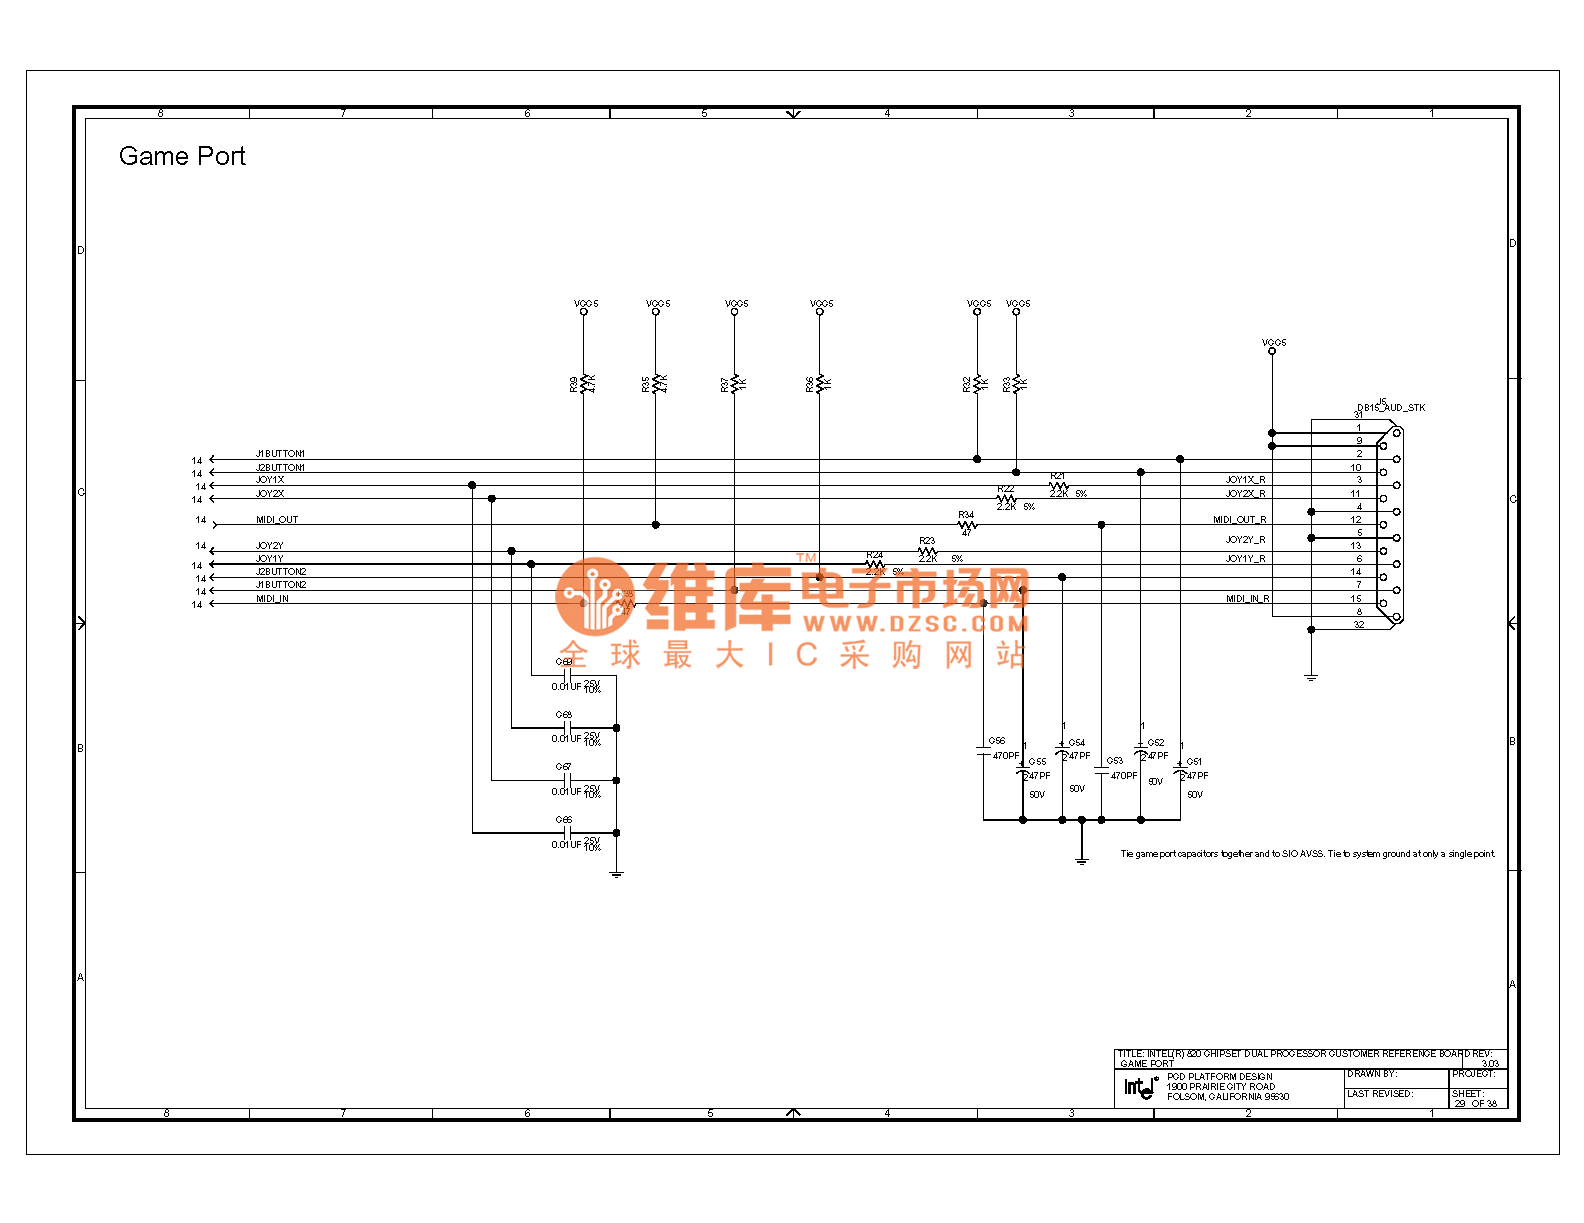 69 Position Diagram http://www.seekic.com/circuit_diagram/Computer-Related_Circuit/820e_computer_motherboard_circuit_diagram_69.html